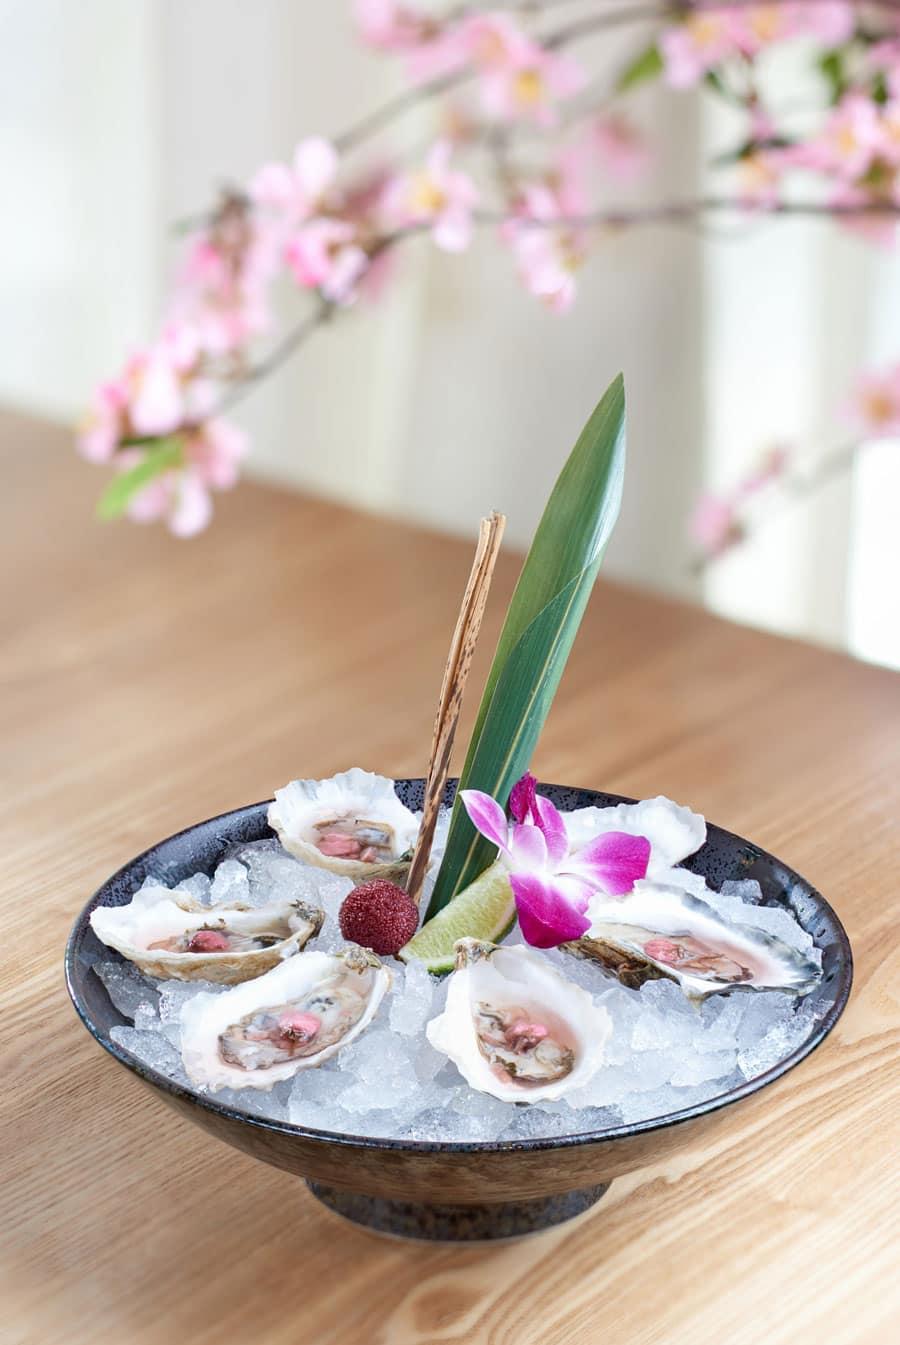 Chilled Panacea Oysters